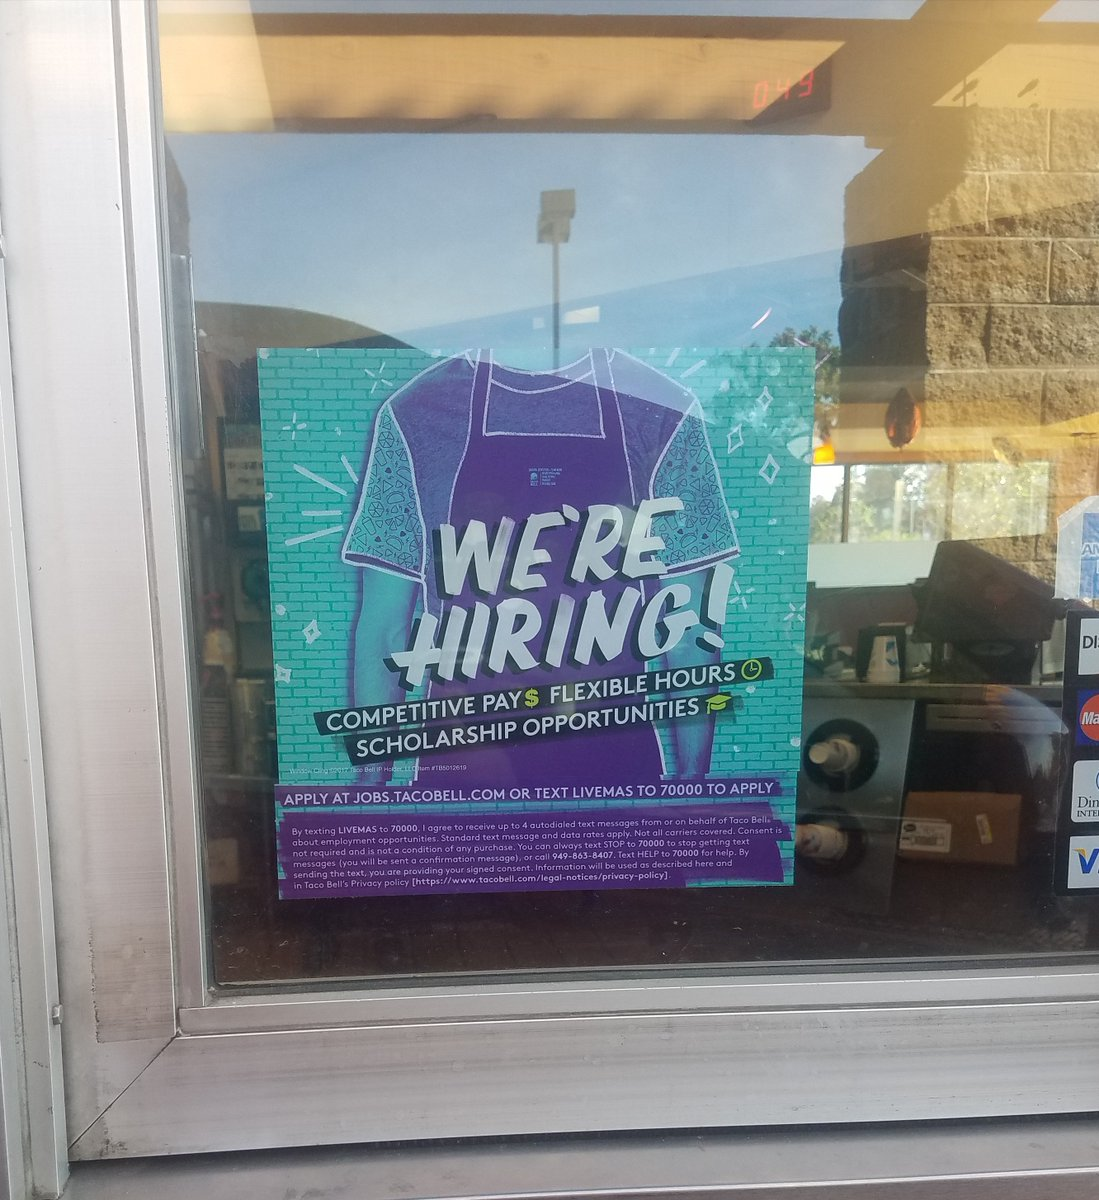 diamond ranch h s on twitter taco bell in diamond bar is hiring